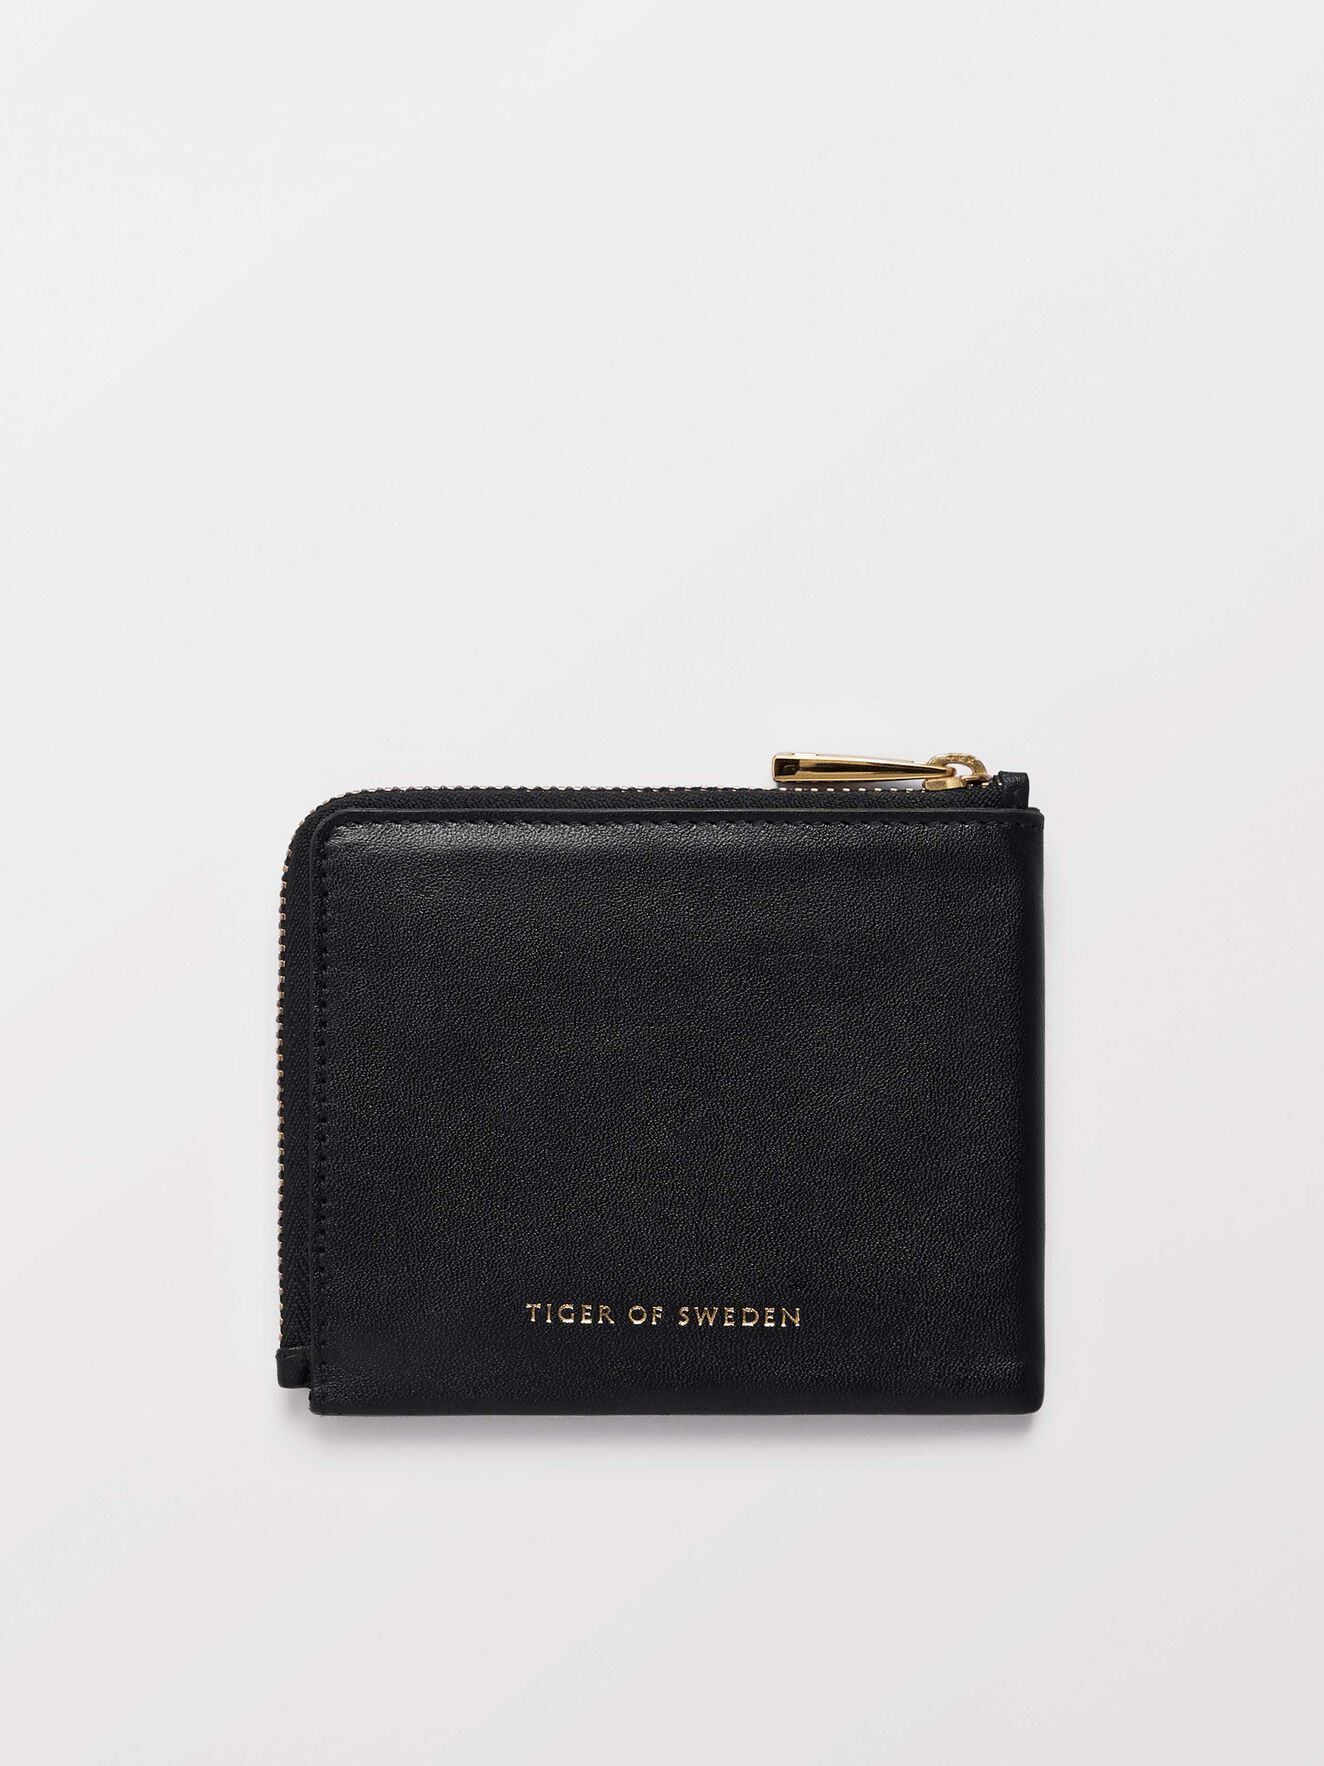 Wortafo Wallet in Black from Tiger of Sweden